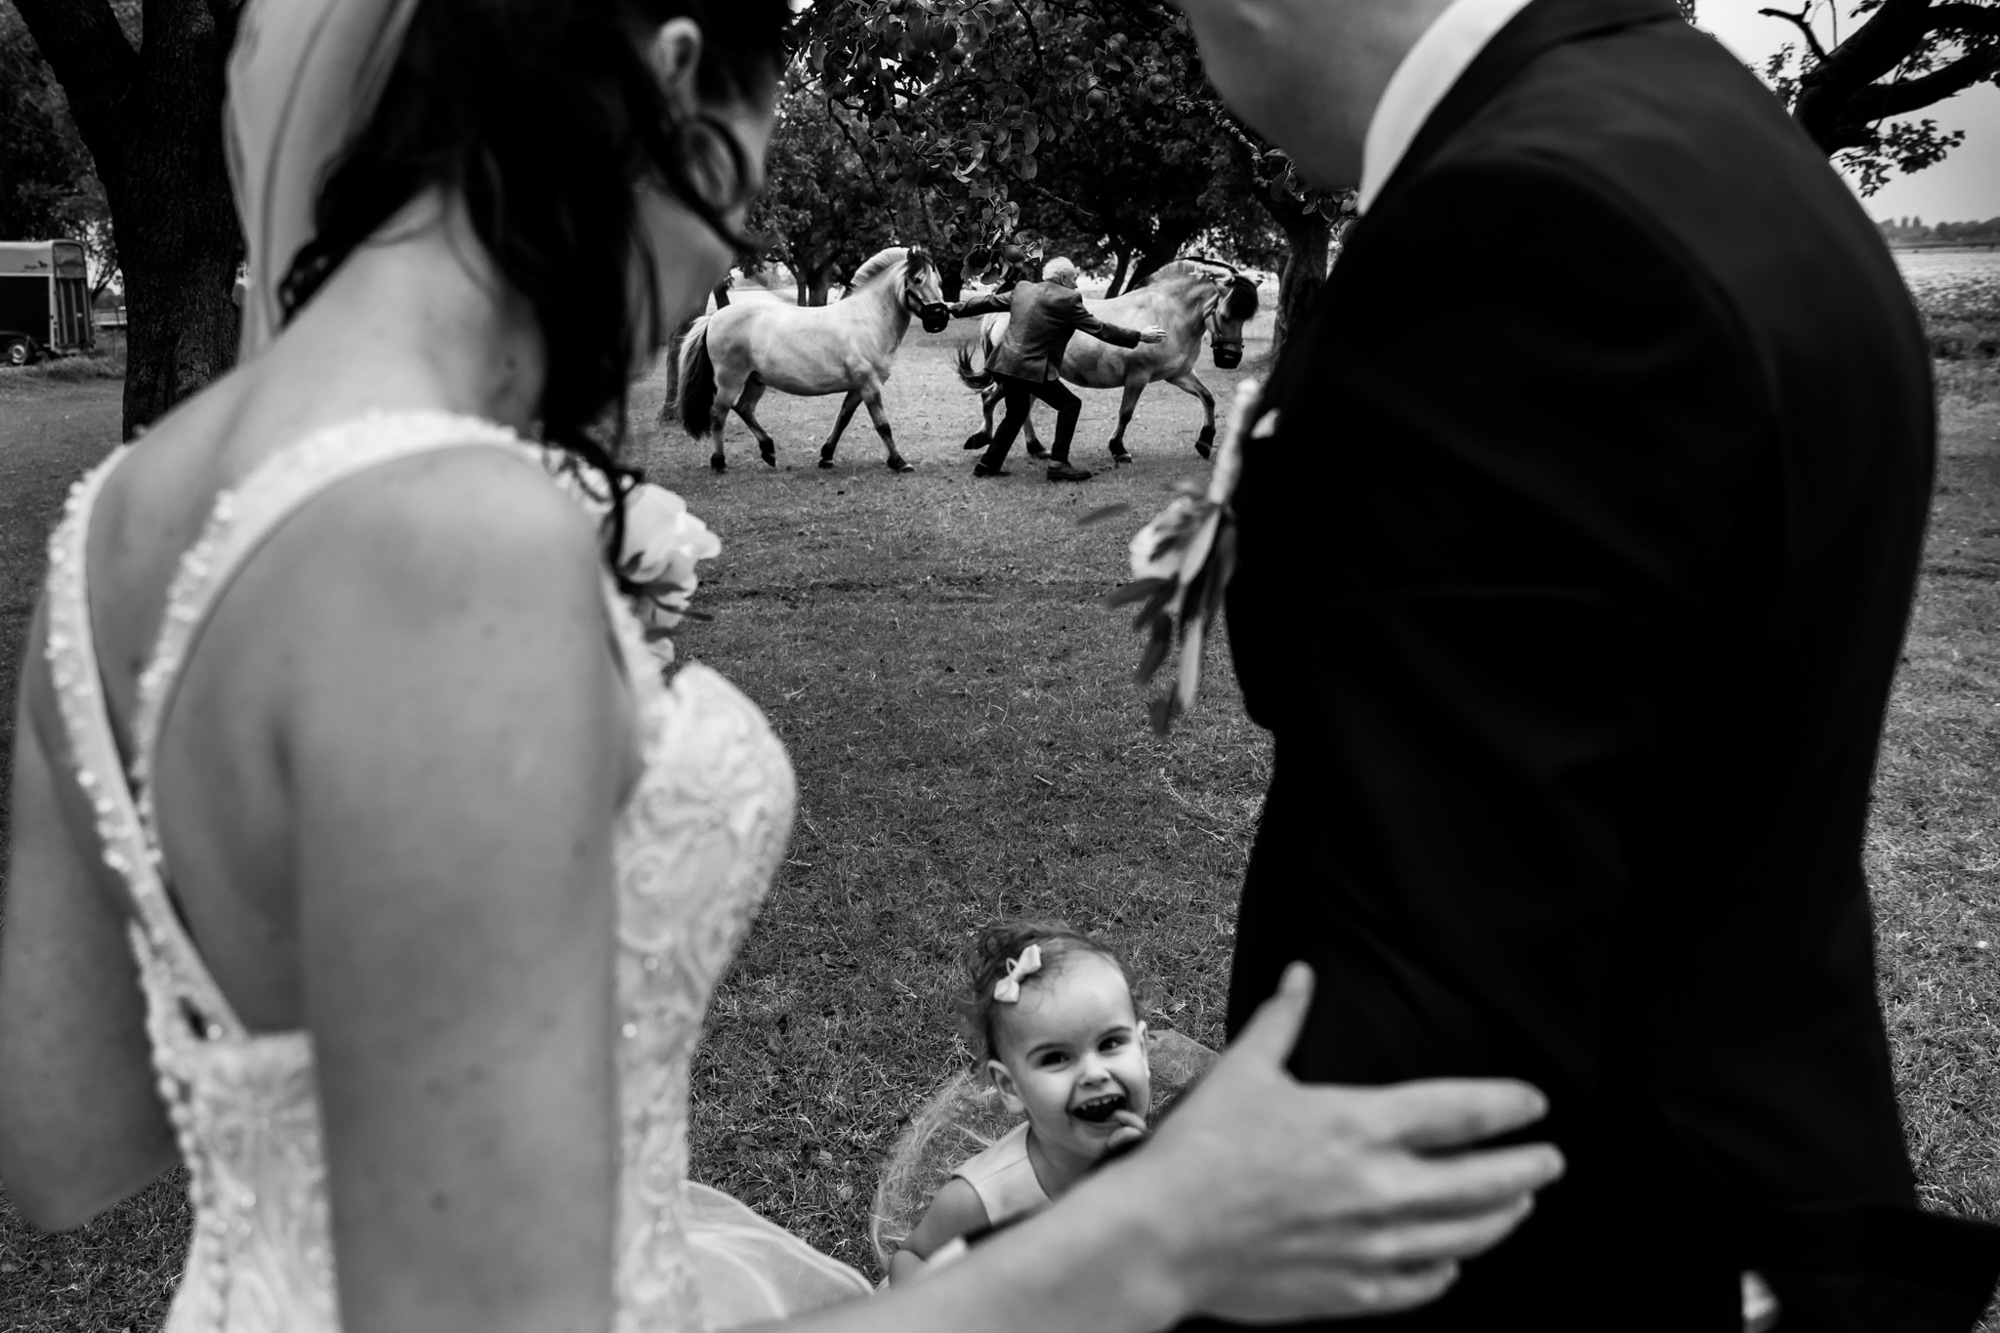 Child framed by couple with horses in the background photo by Fotobelle: Isabelle Hattink